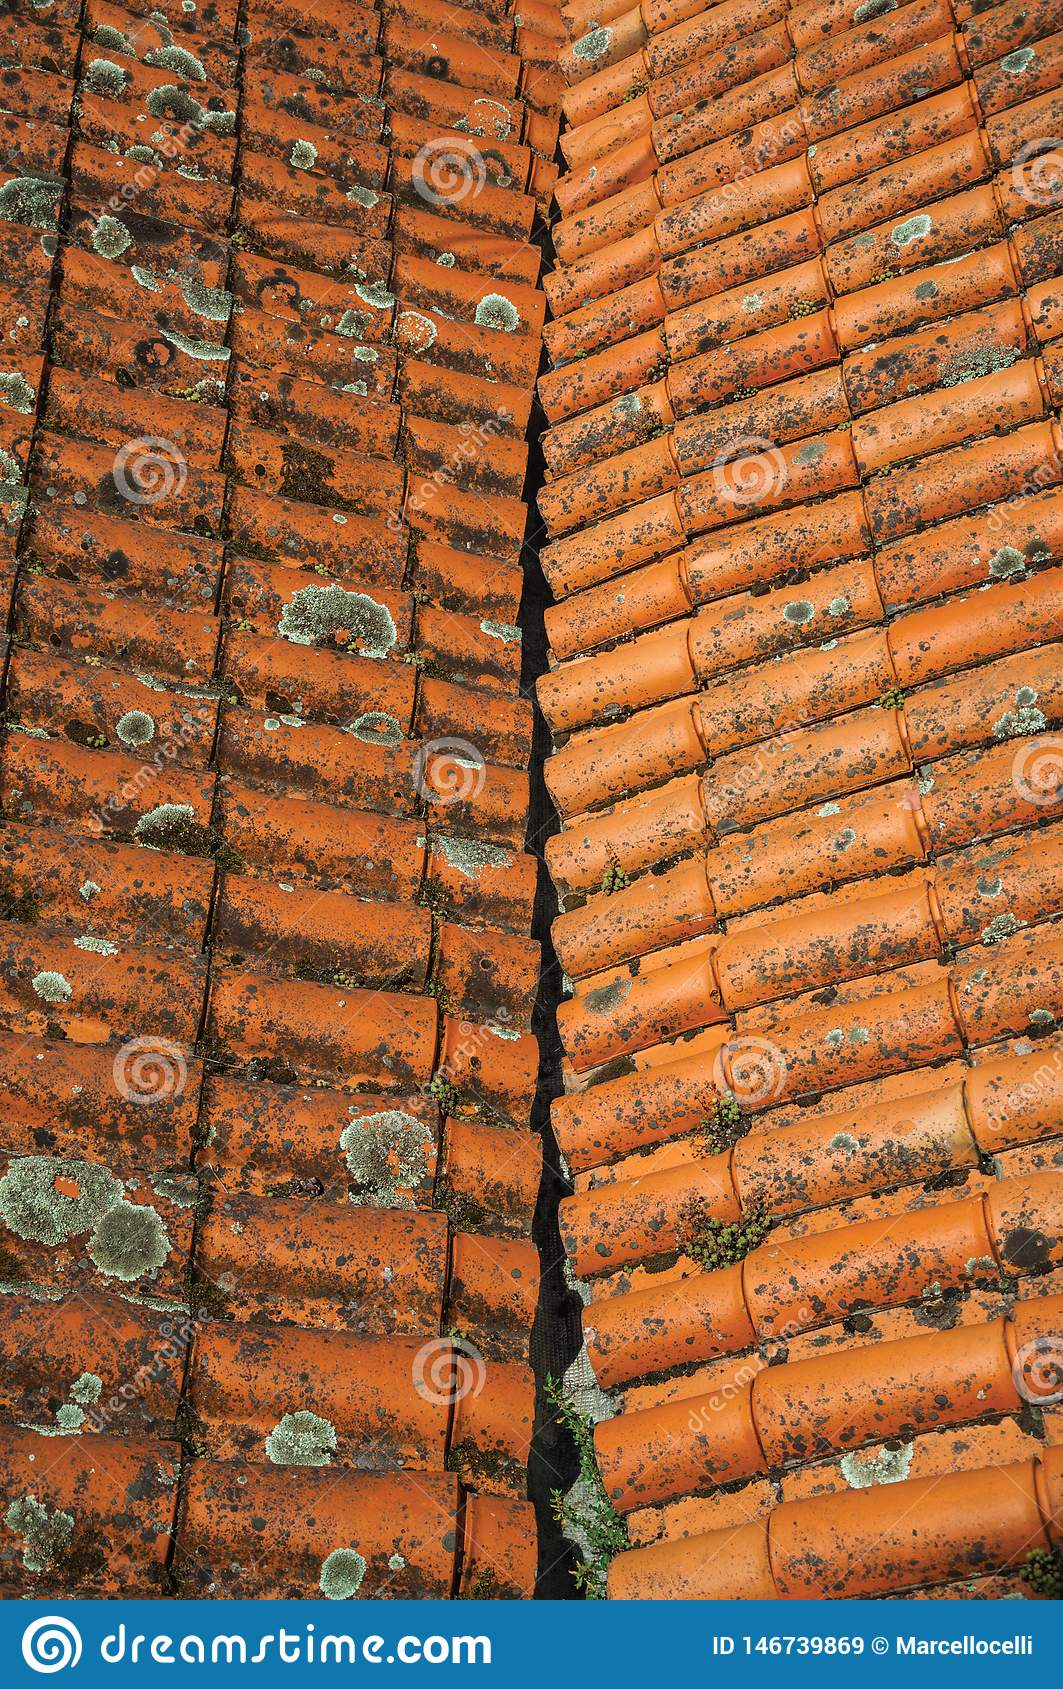 Shingles on roof covered by moss and lichens